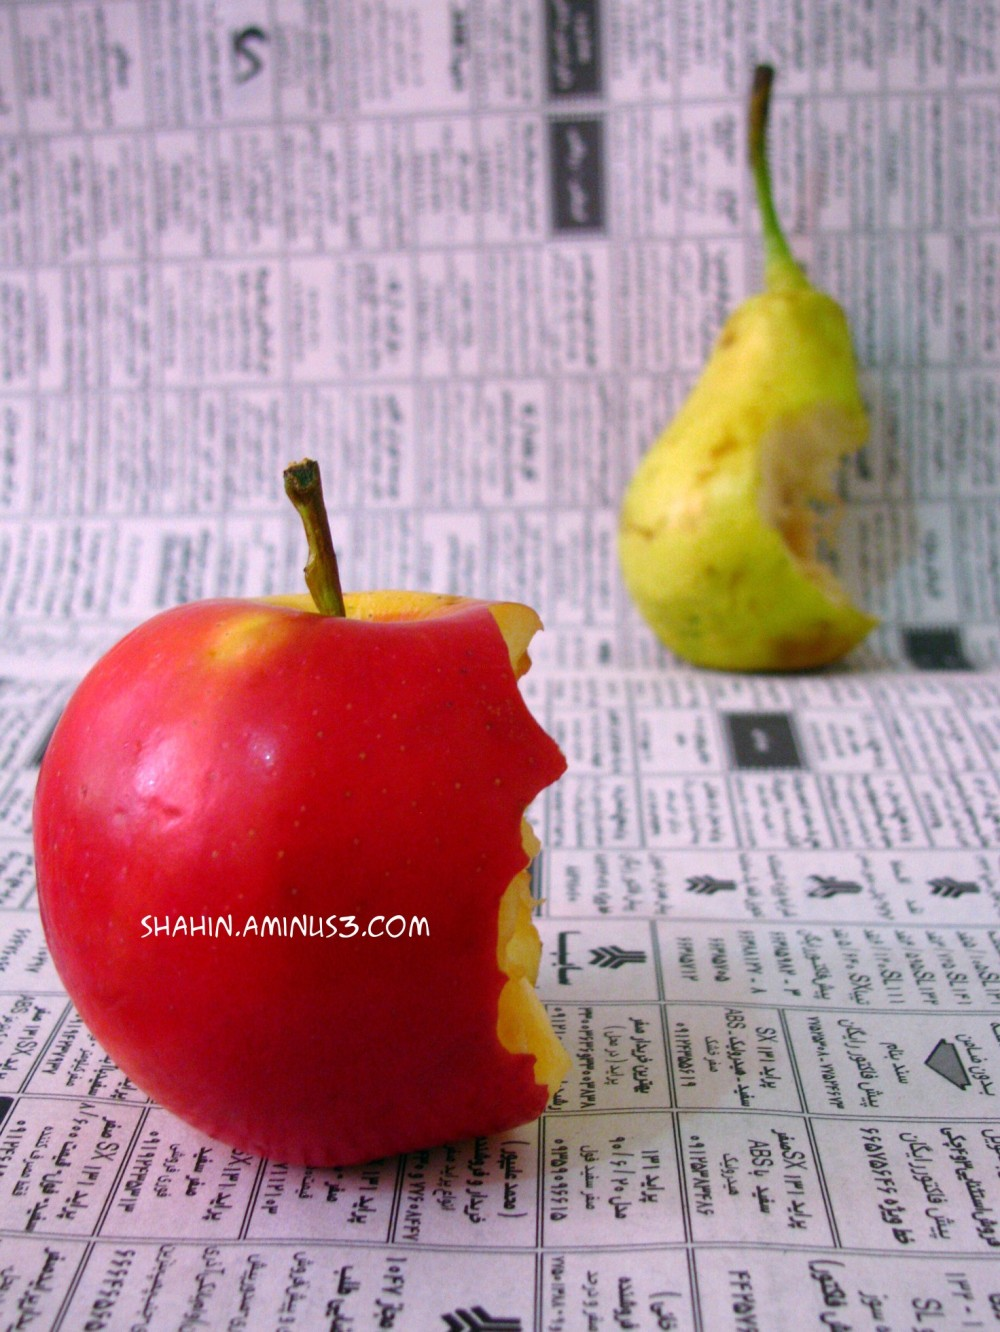 Newspaper-Apple-Pears